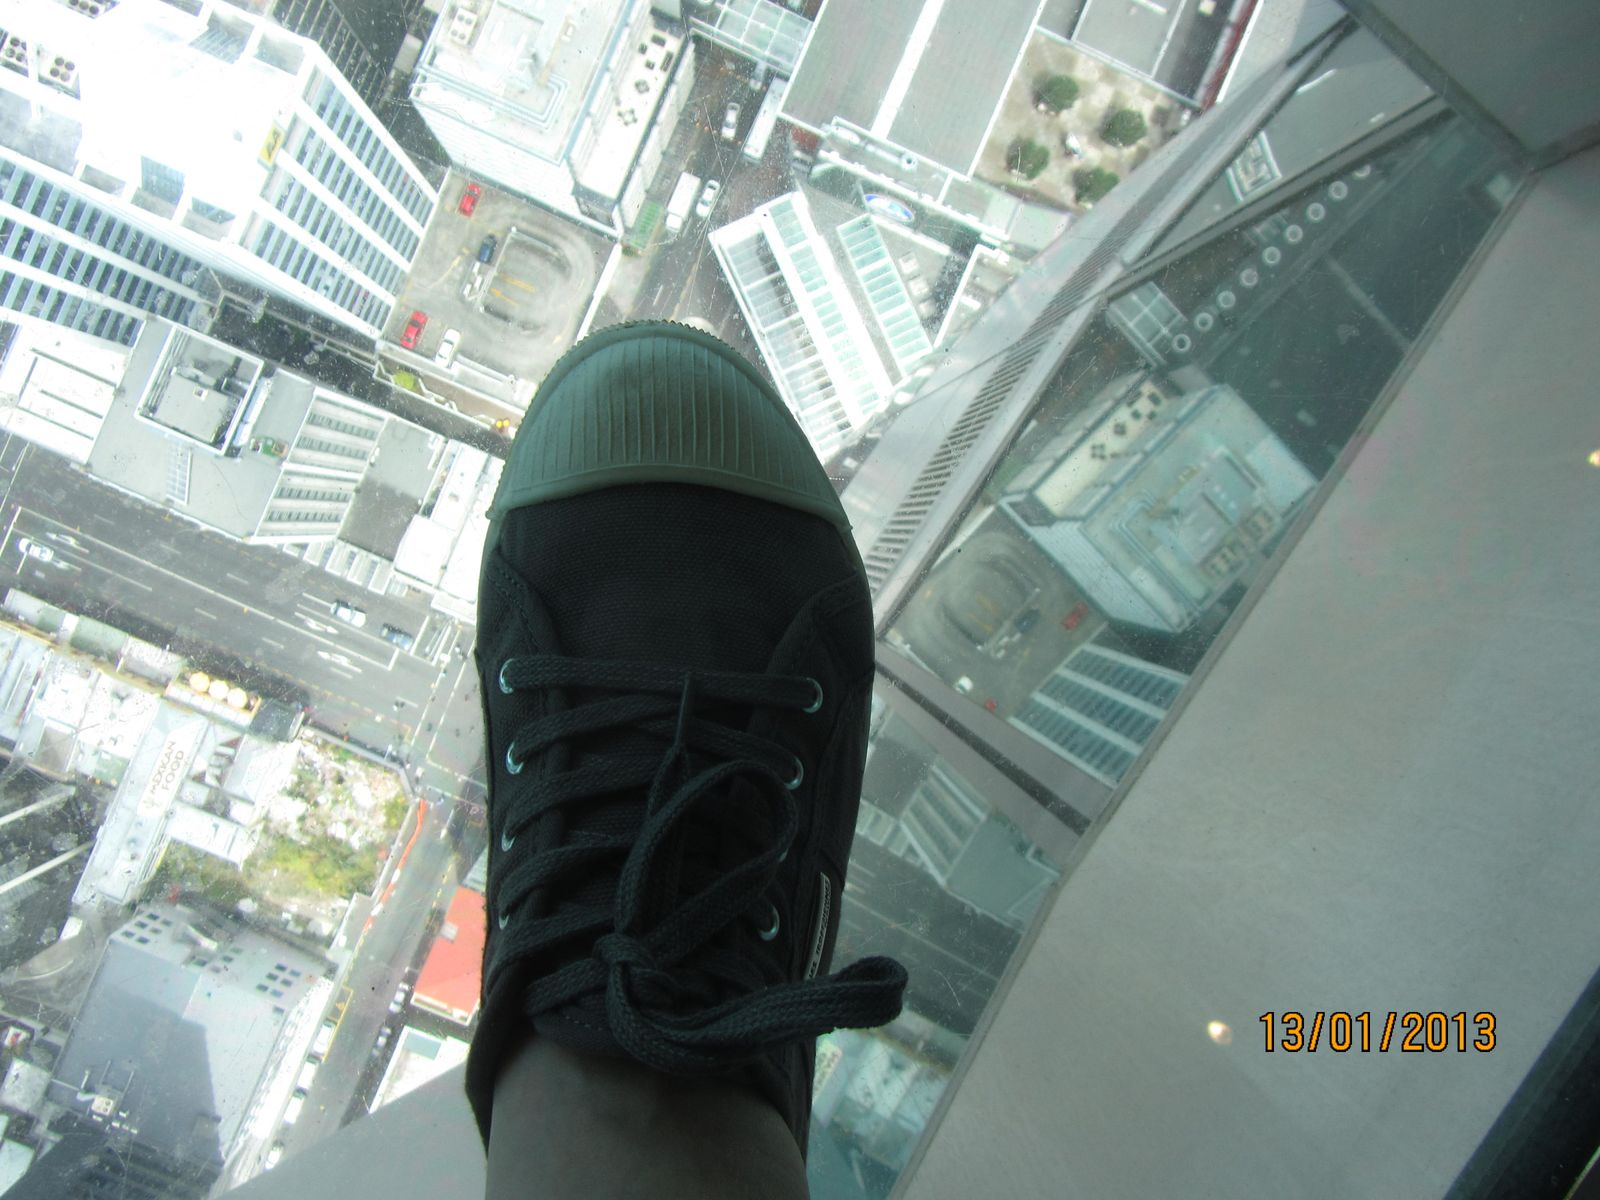 What a view! What a foot!